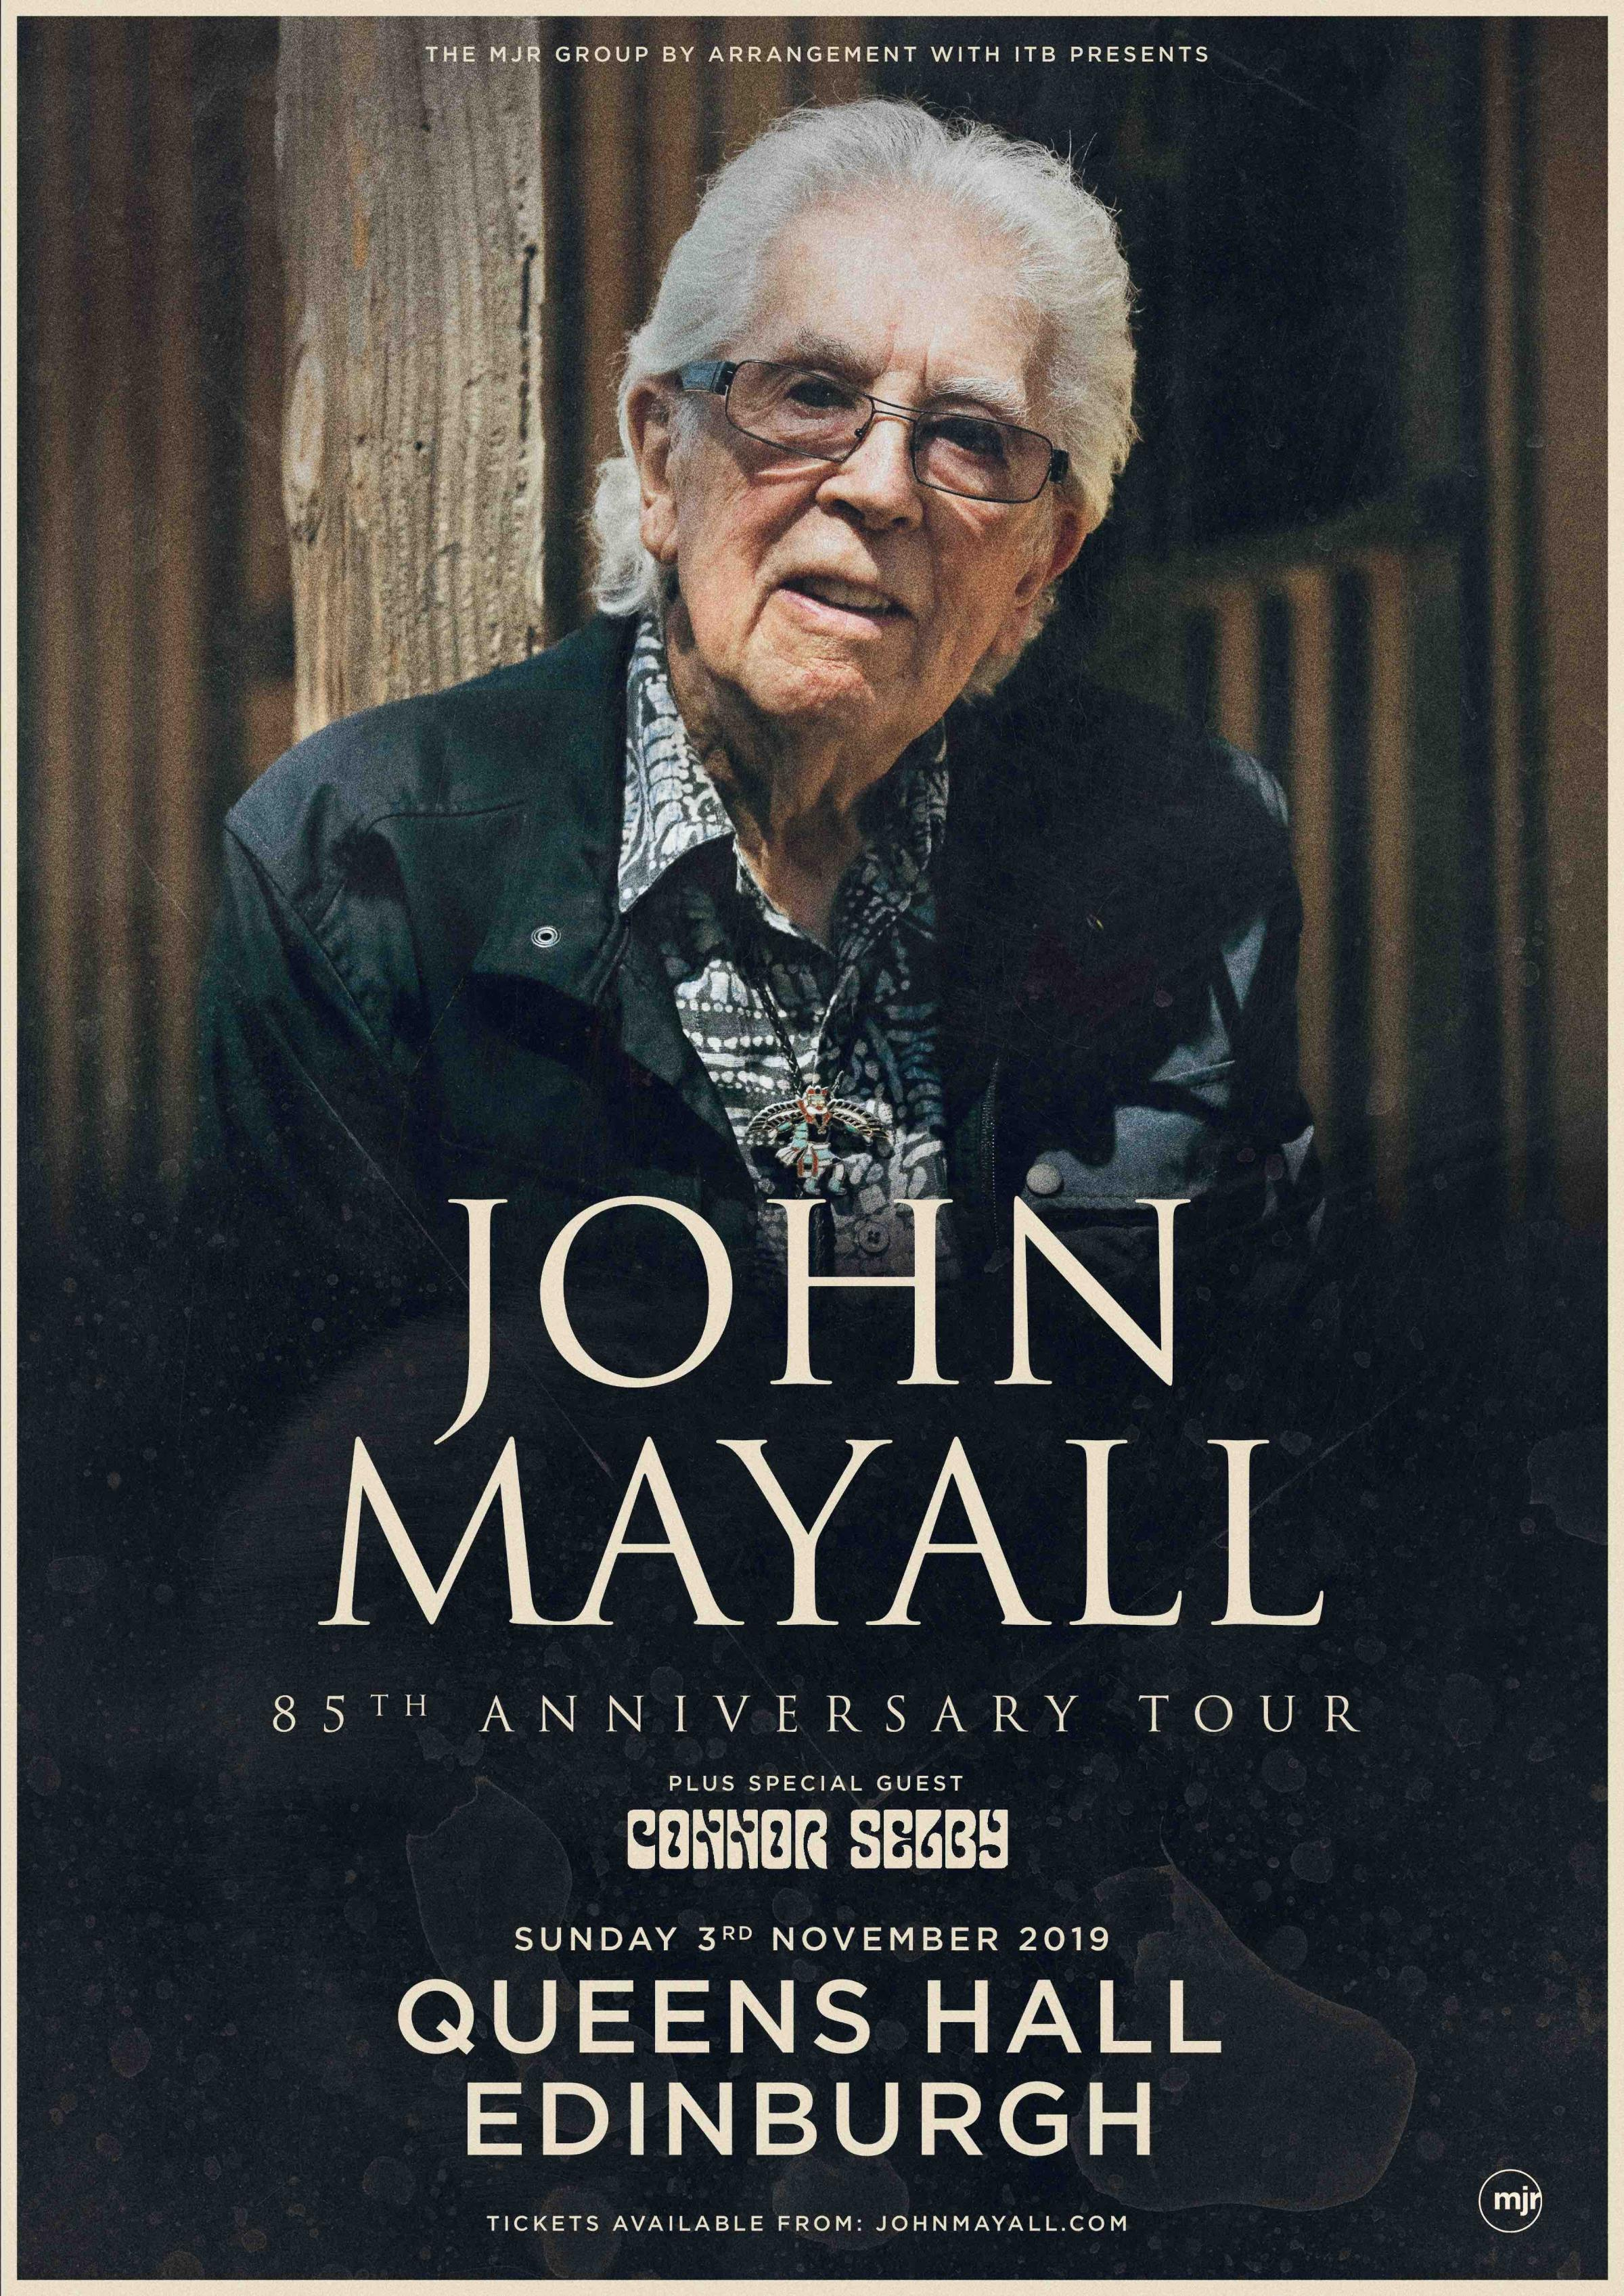 John Mayall's 85th Anniversary Tour